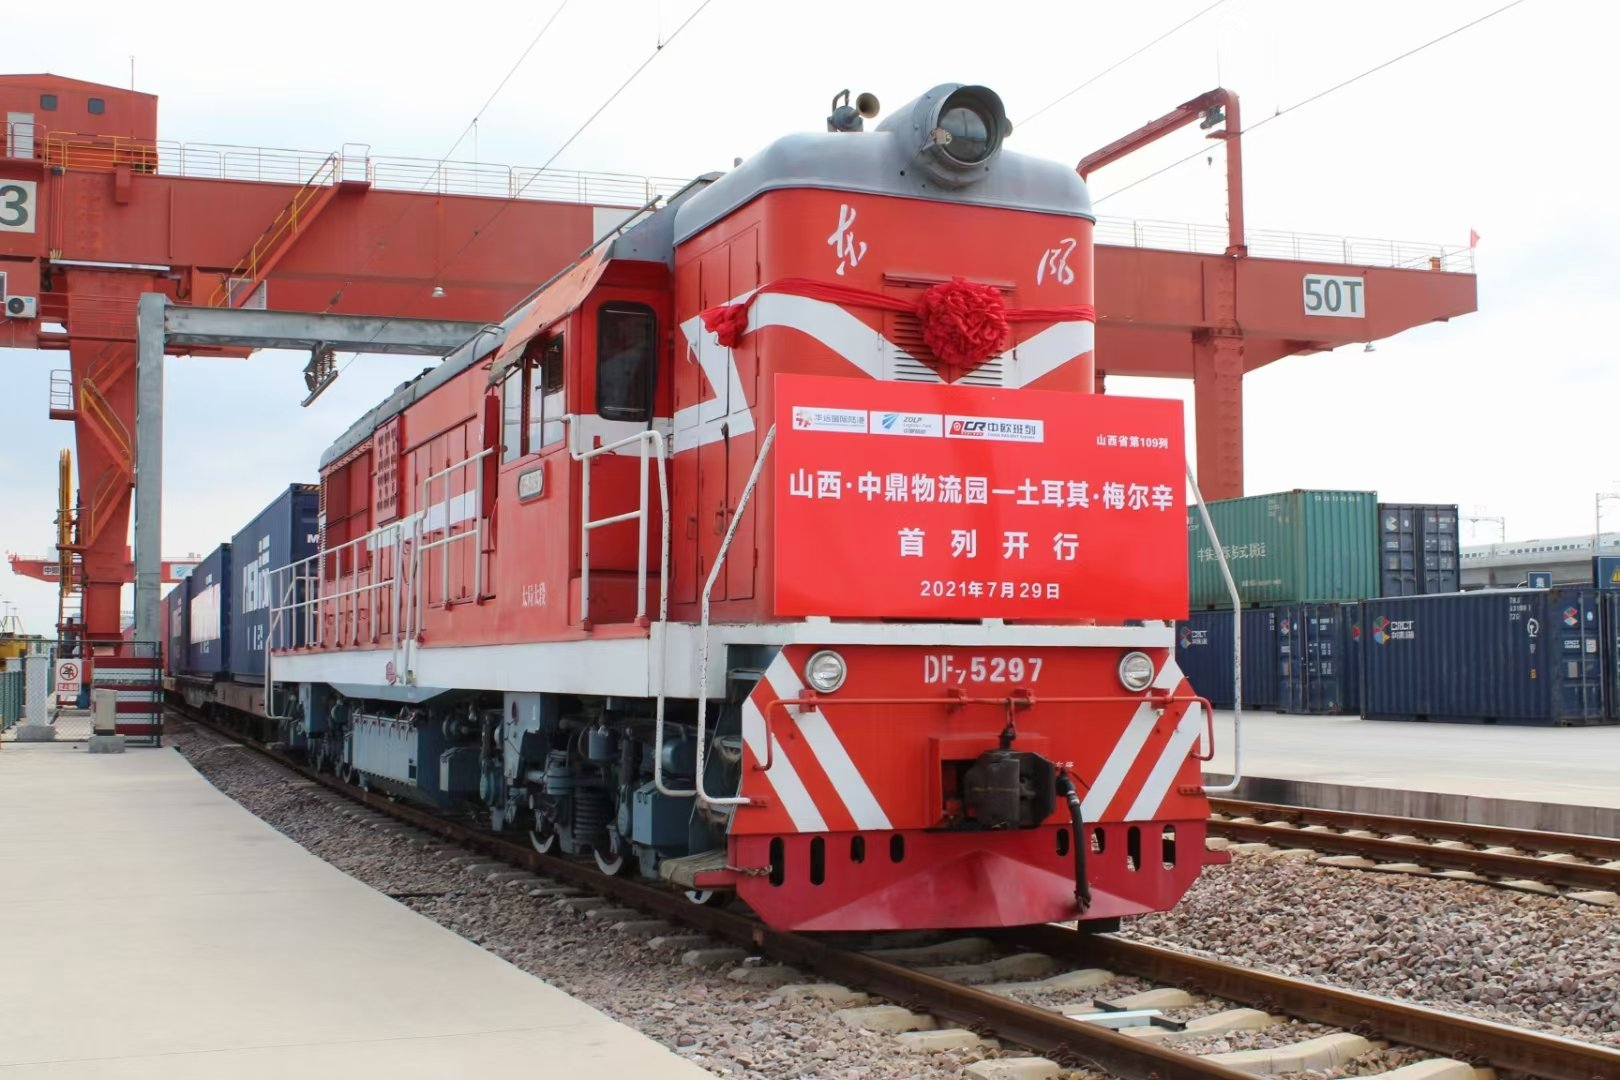 China's Shanxi opens freight train service to Mersin in southern Turkey